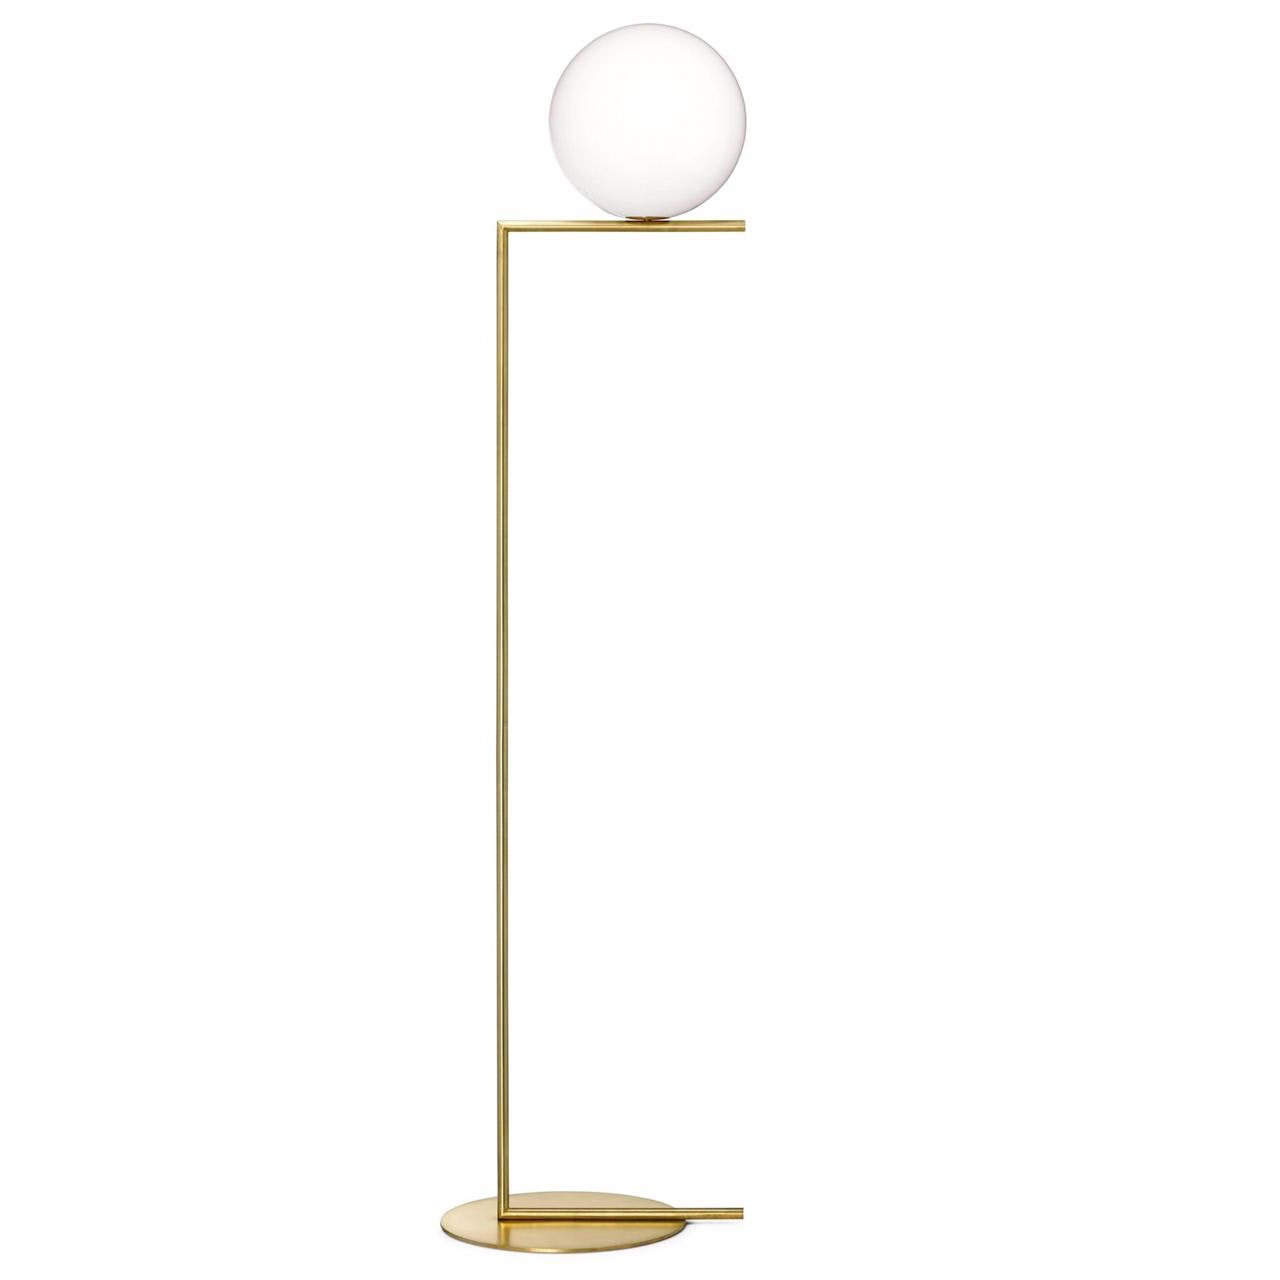 Lite and Deco Floor Lamp 9137F/M